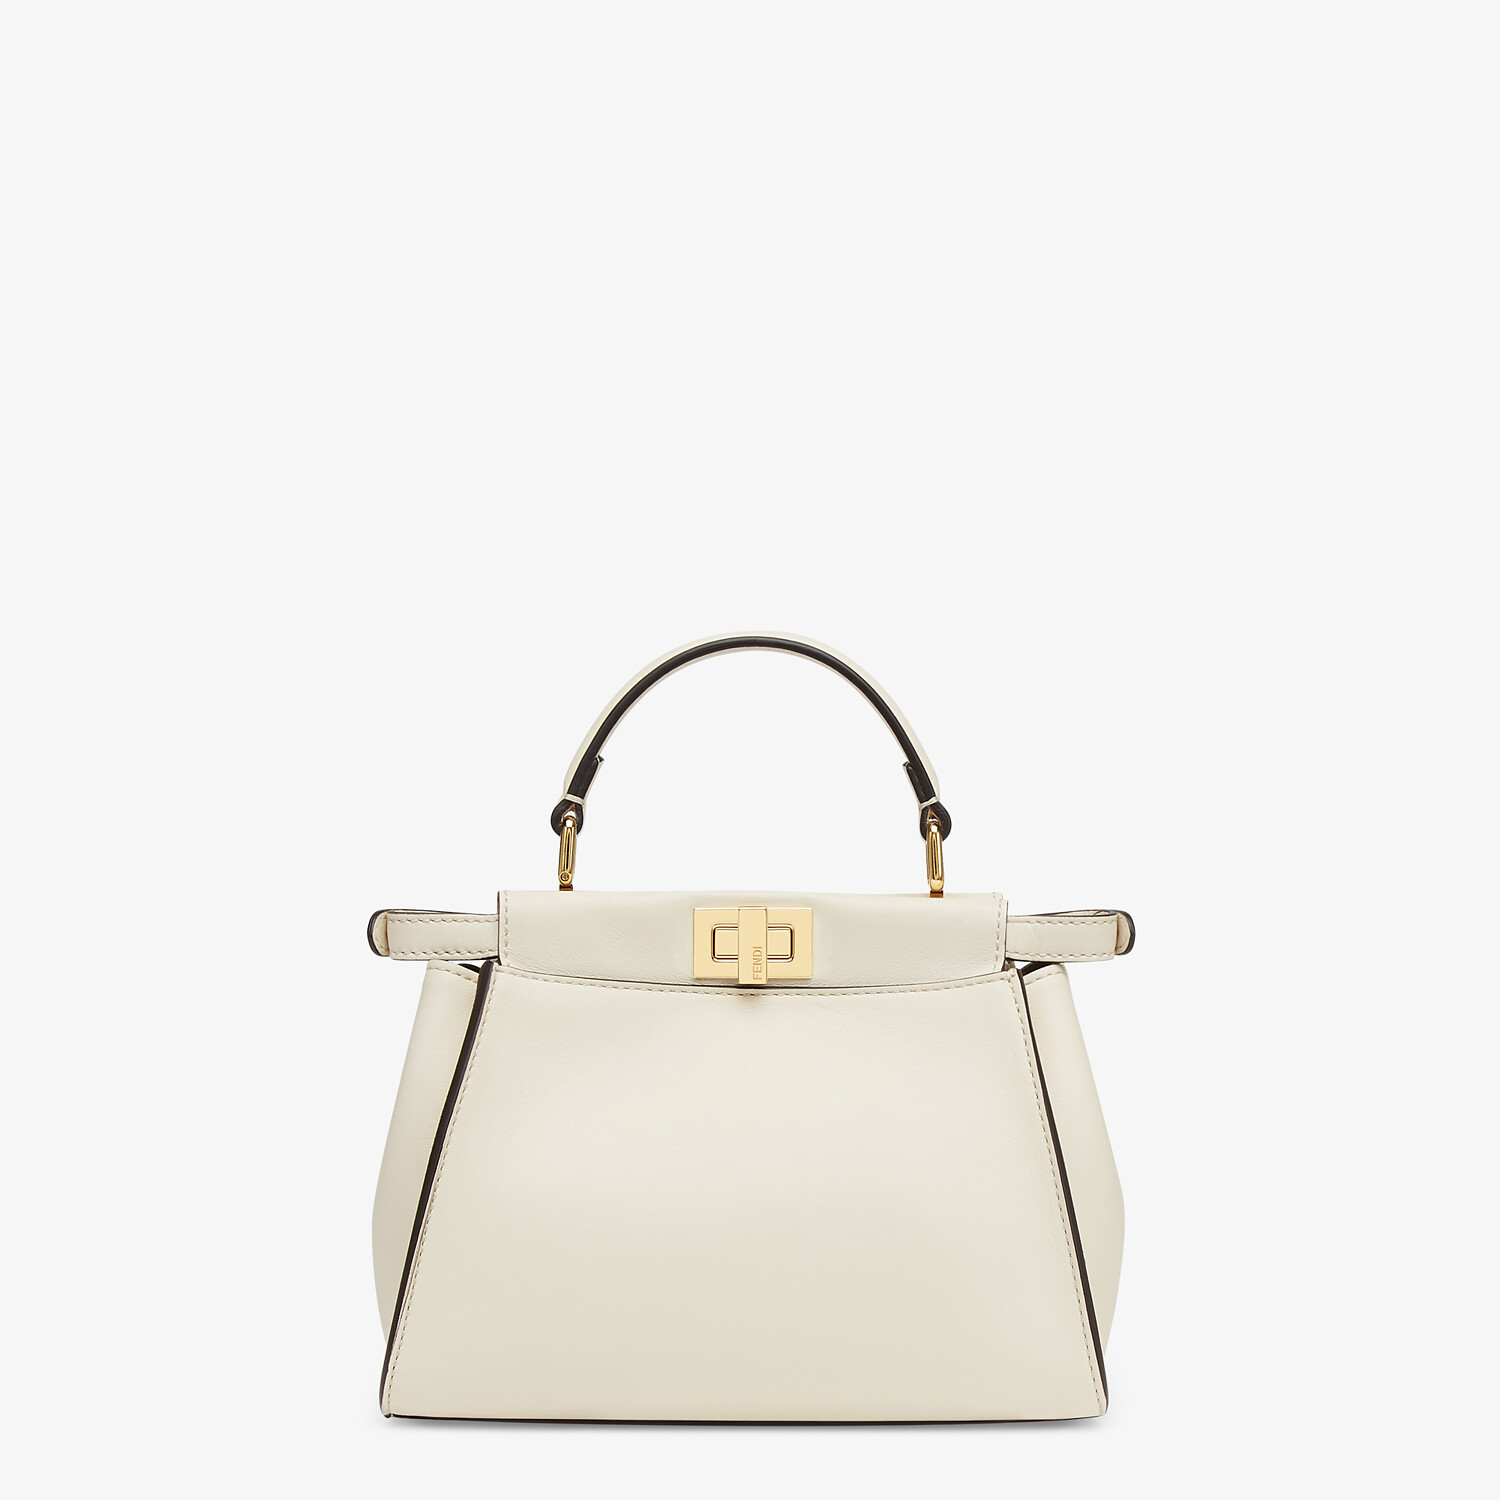 FENDI PEEKABOO ICONIC MINI - White leather bag - view 4 detail